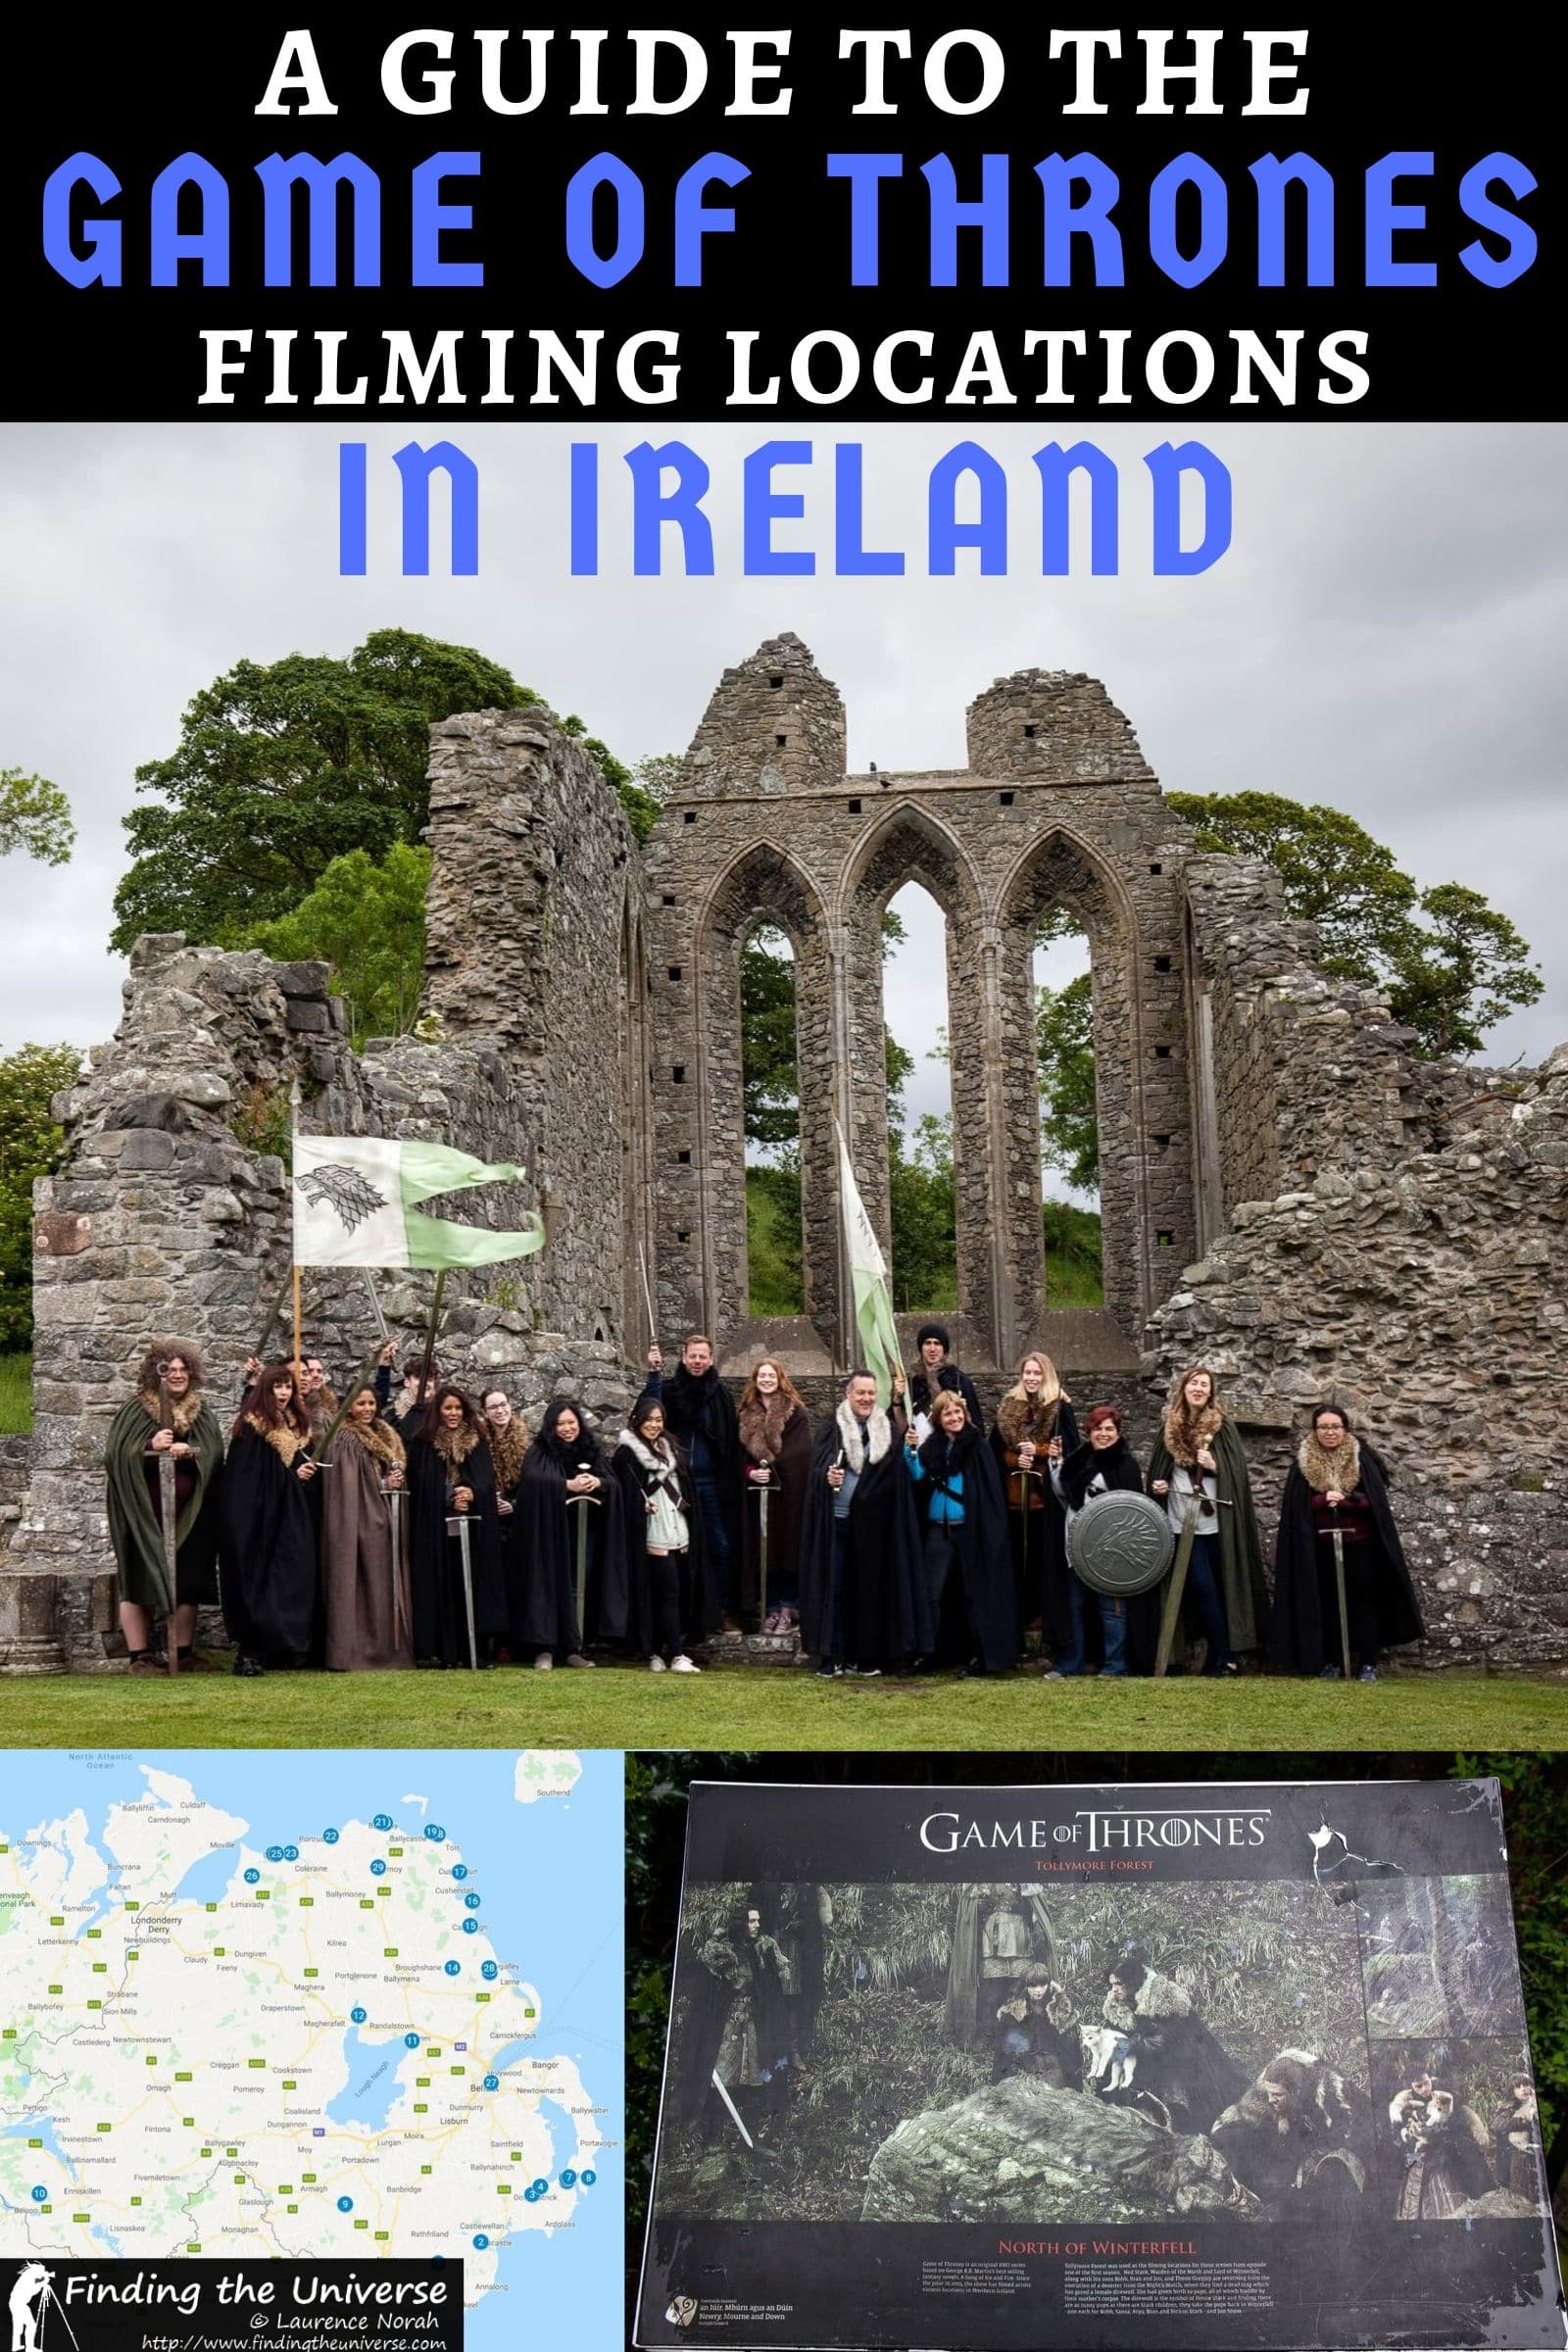 Detailed guide and map of all the Game of Thrones filming location in Ireland. Includes filming locations in Northern Ireland + suggested tours, tips & map